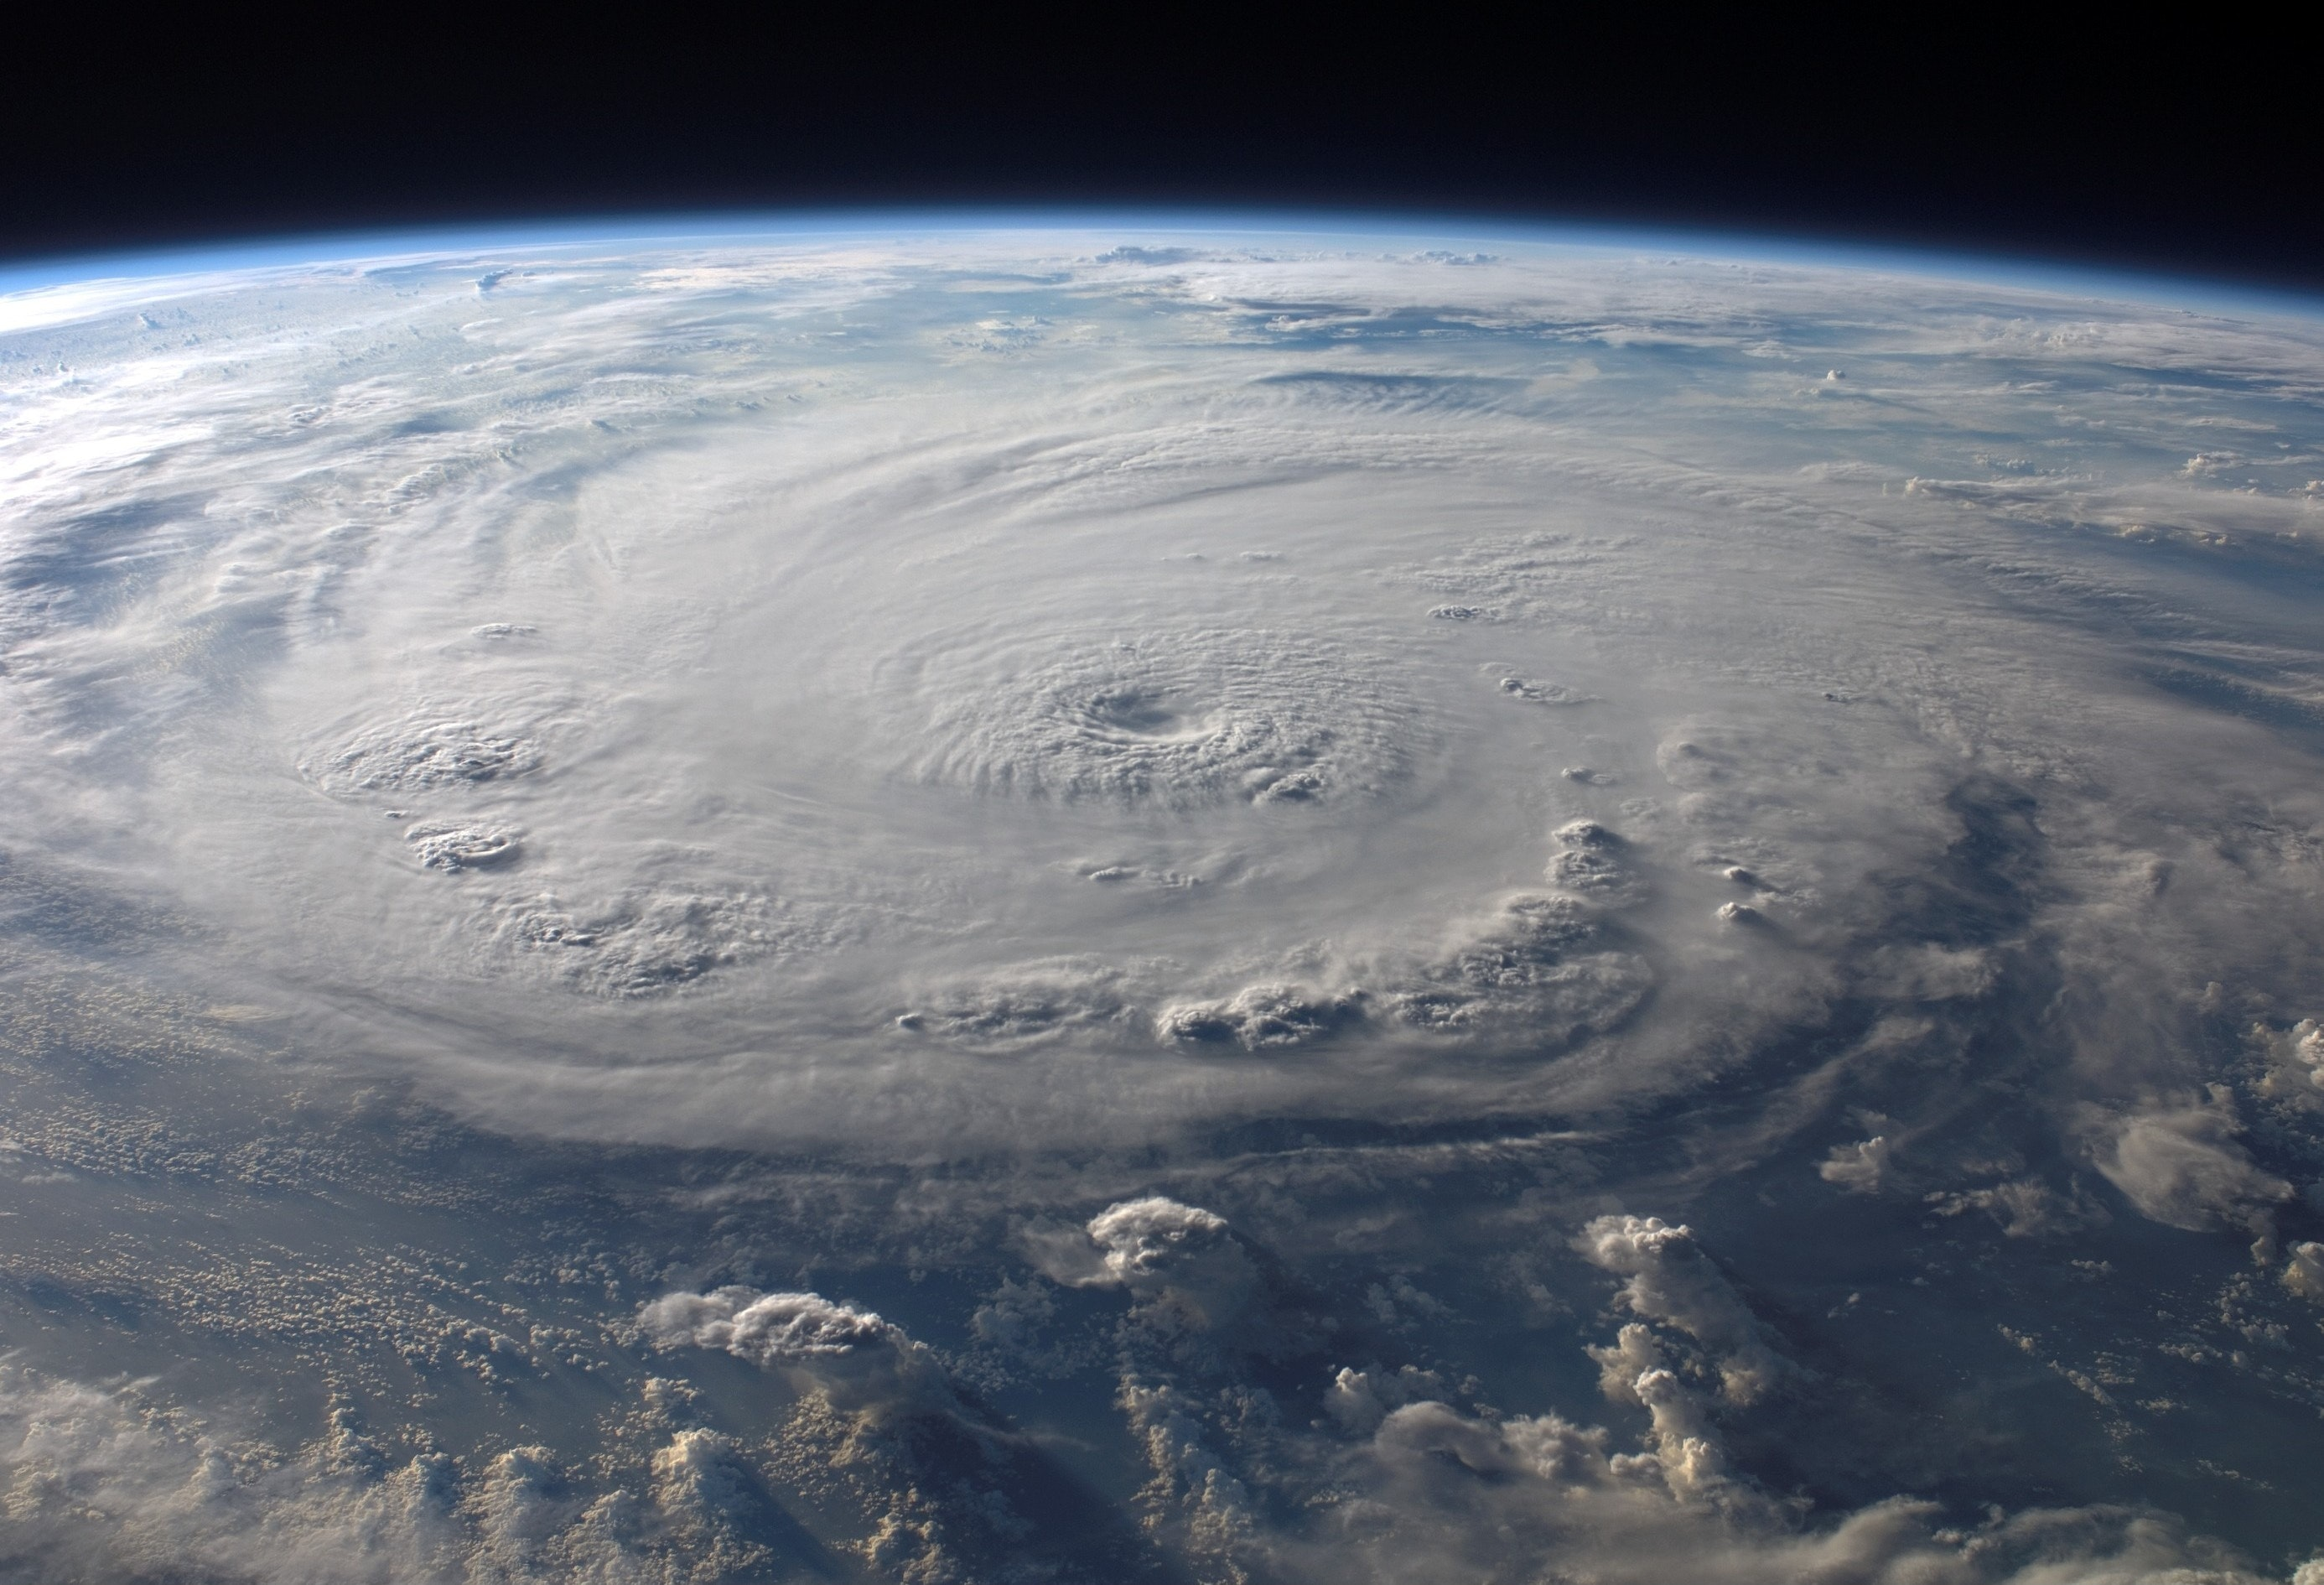 Photograph of a hurricane from space